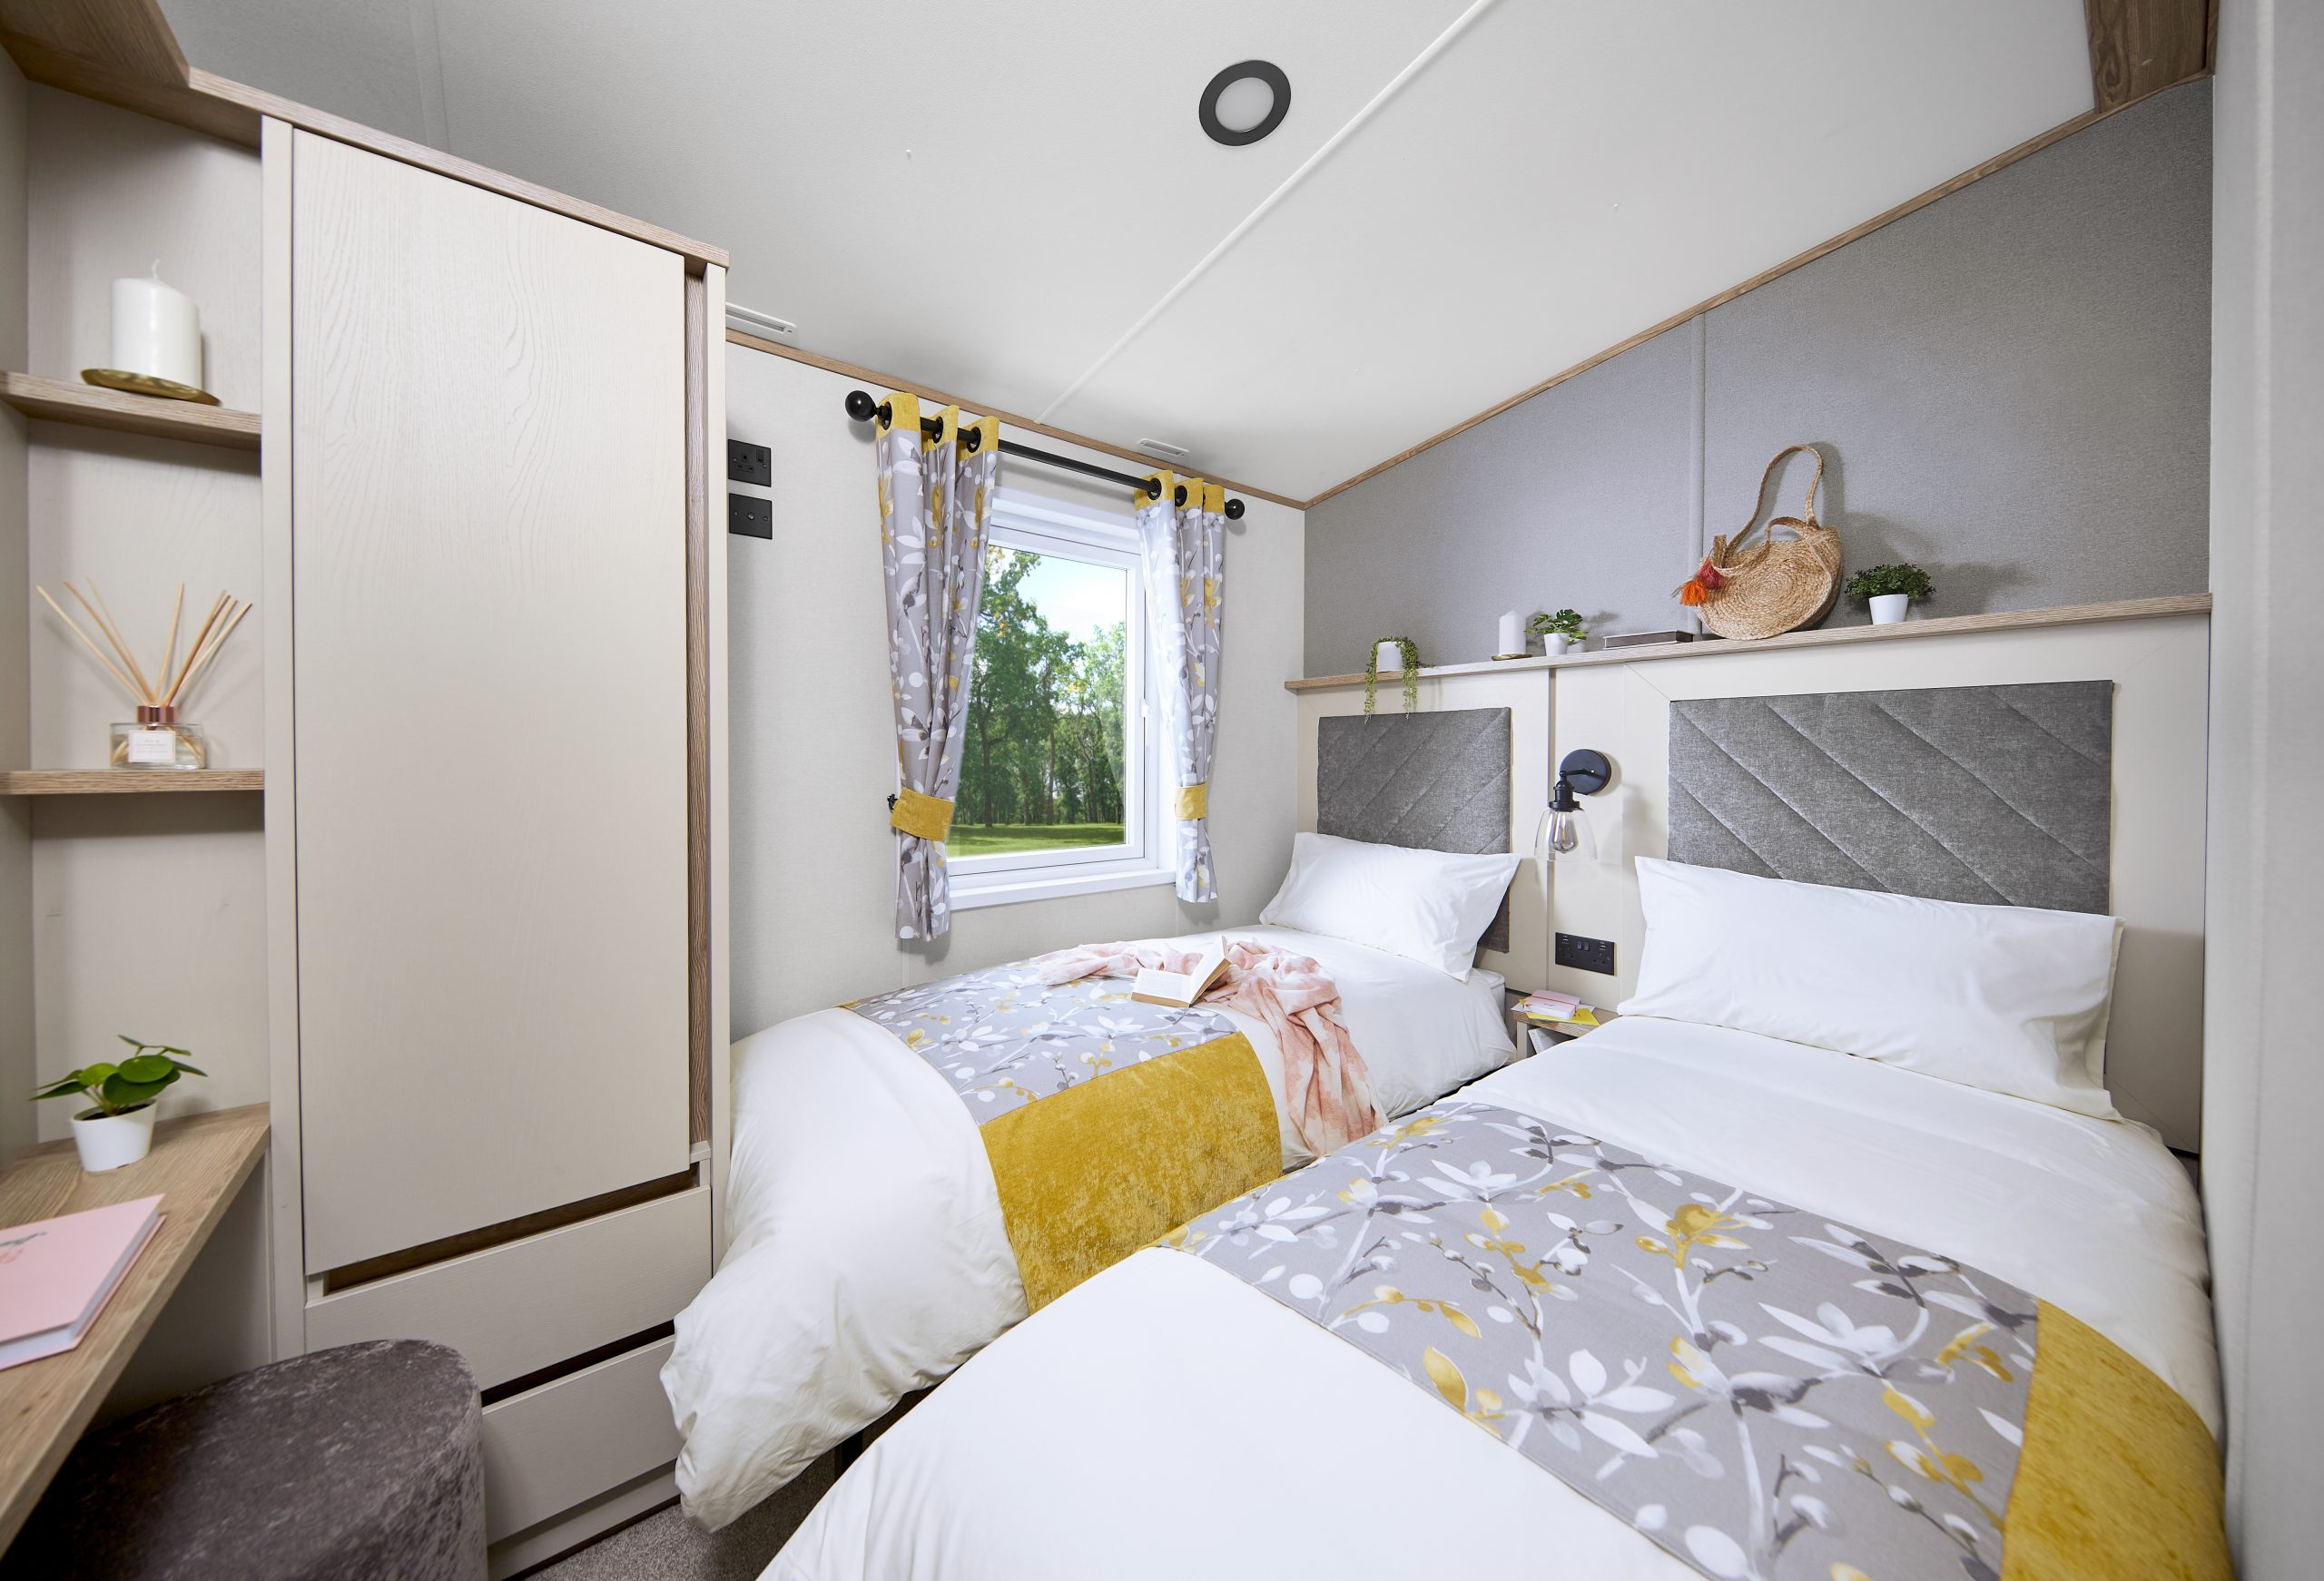 caravan site lincolnshire, touring & camping site lincolnshire, glamping pods with hot tub lincolnshire